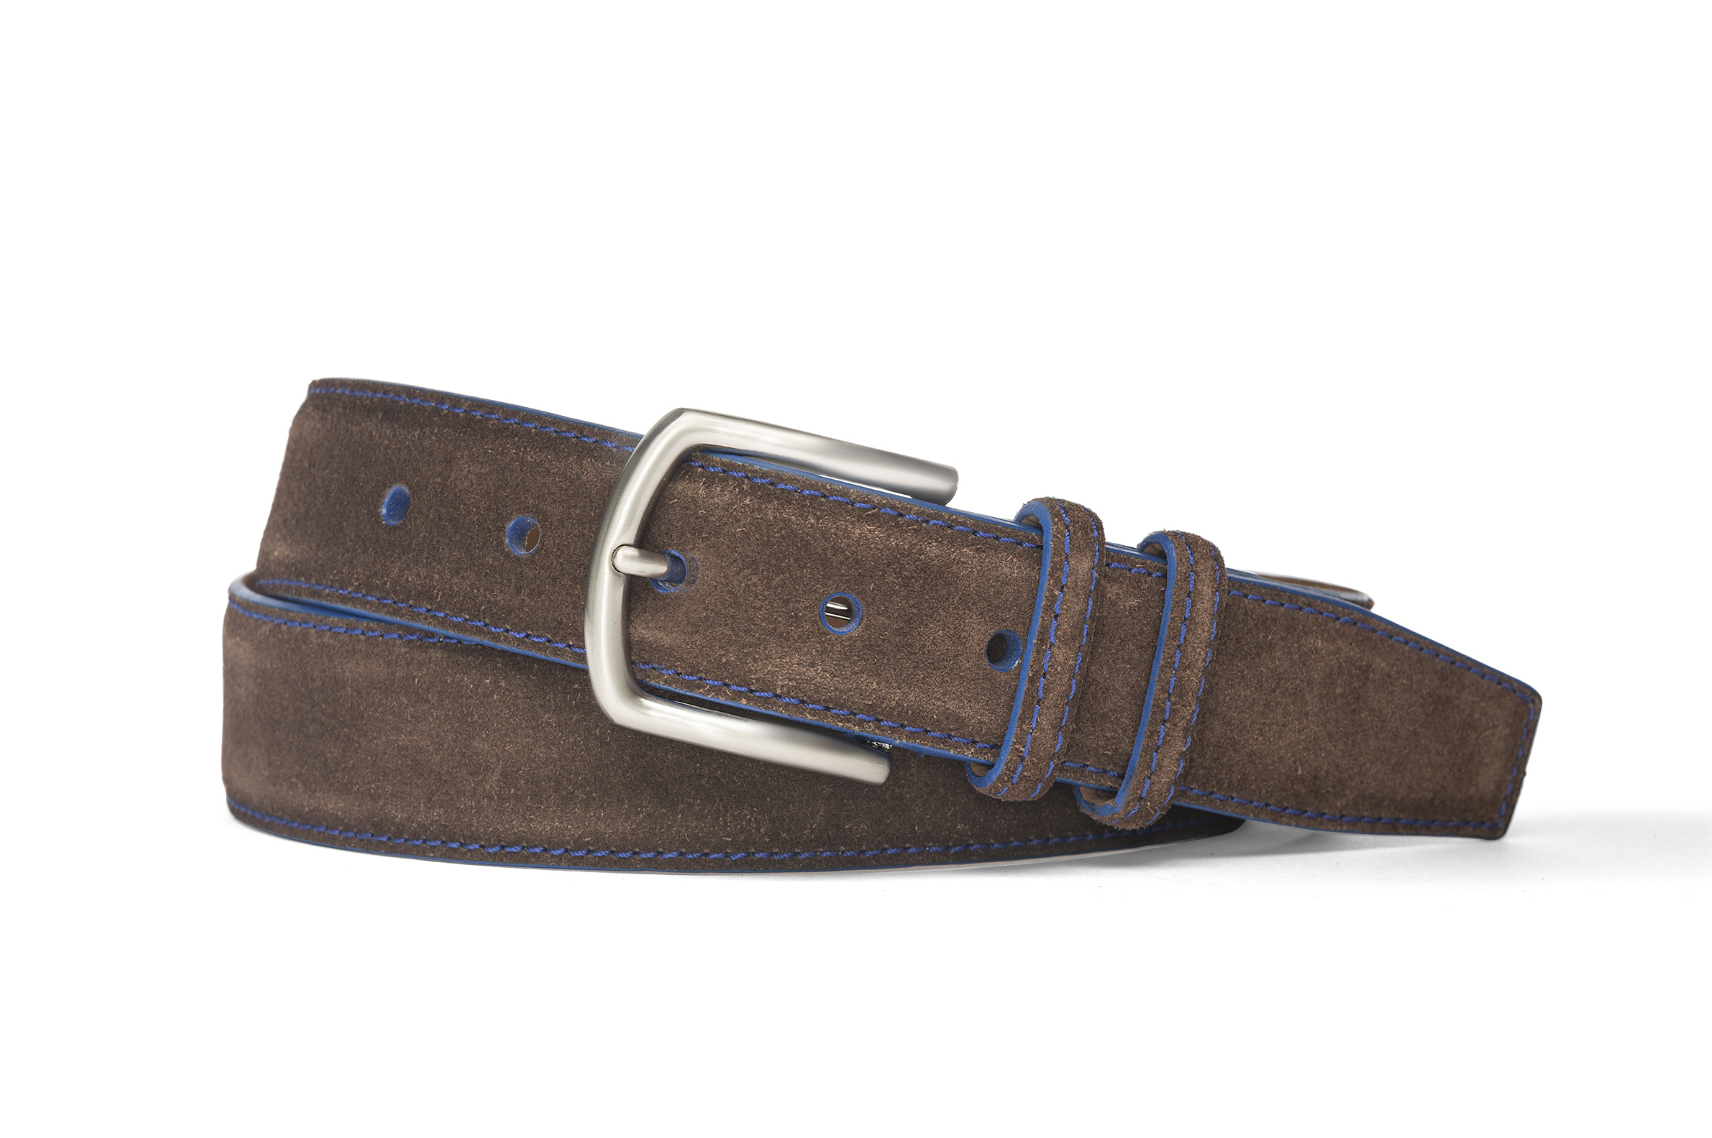 W.KLEINGBERG SUEDE BELT - CHOCOLATE WITH ROYAL BLUE DETAIL